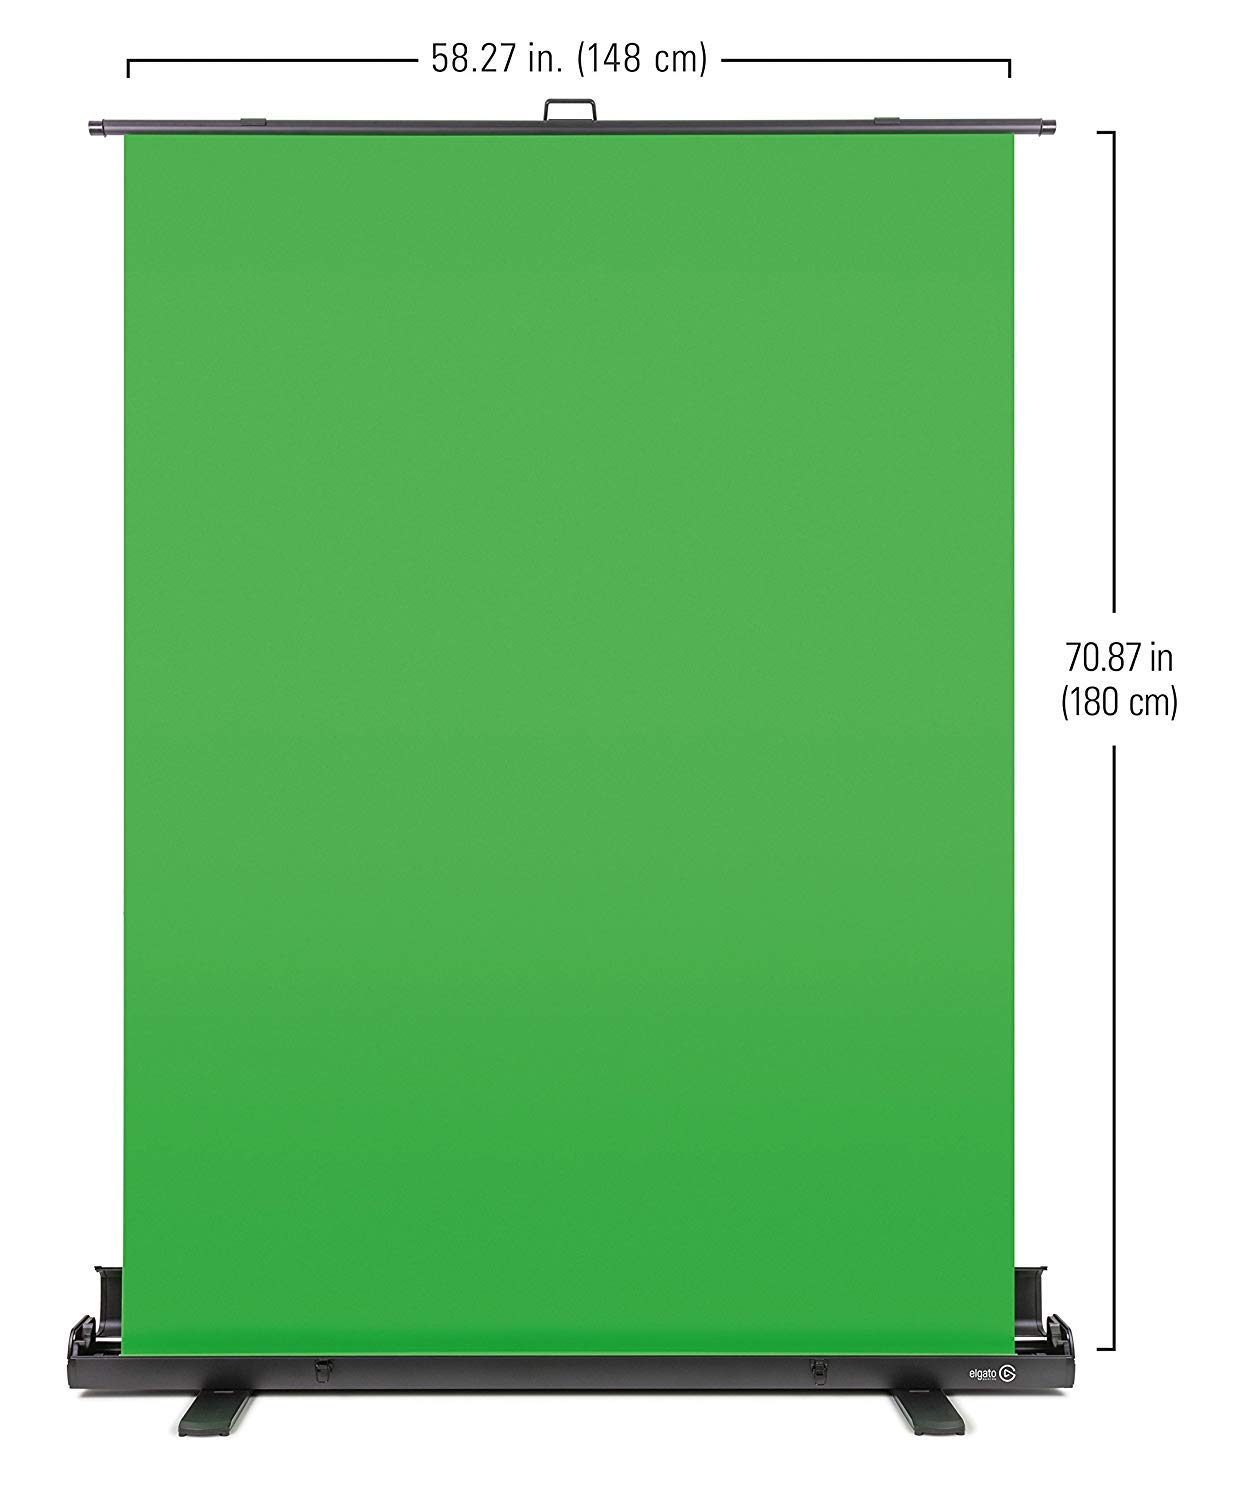 Elgato Green Screen - Collapsible chroma key panel for background removal  with auto-locking frame, wrinkle-resistant chroma-green fabric, aluminum